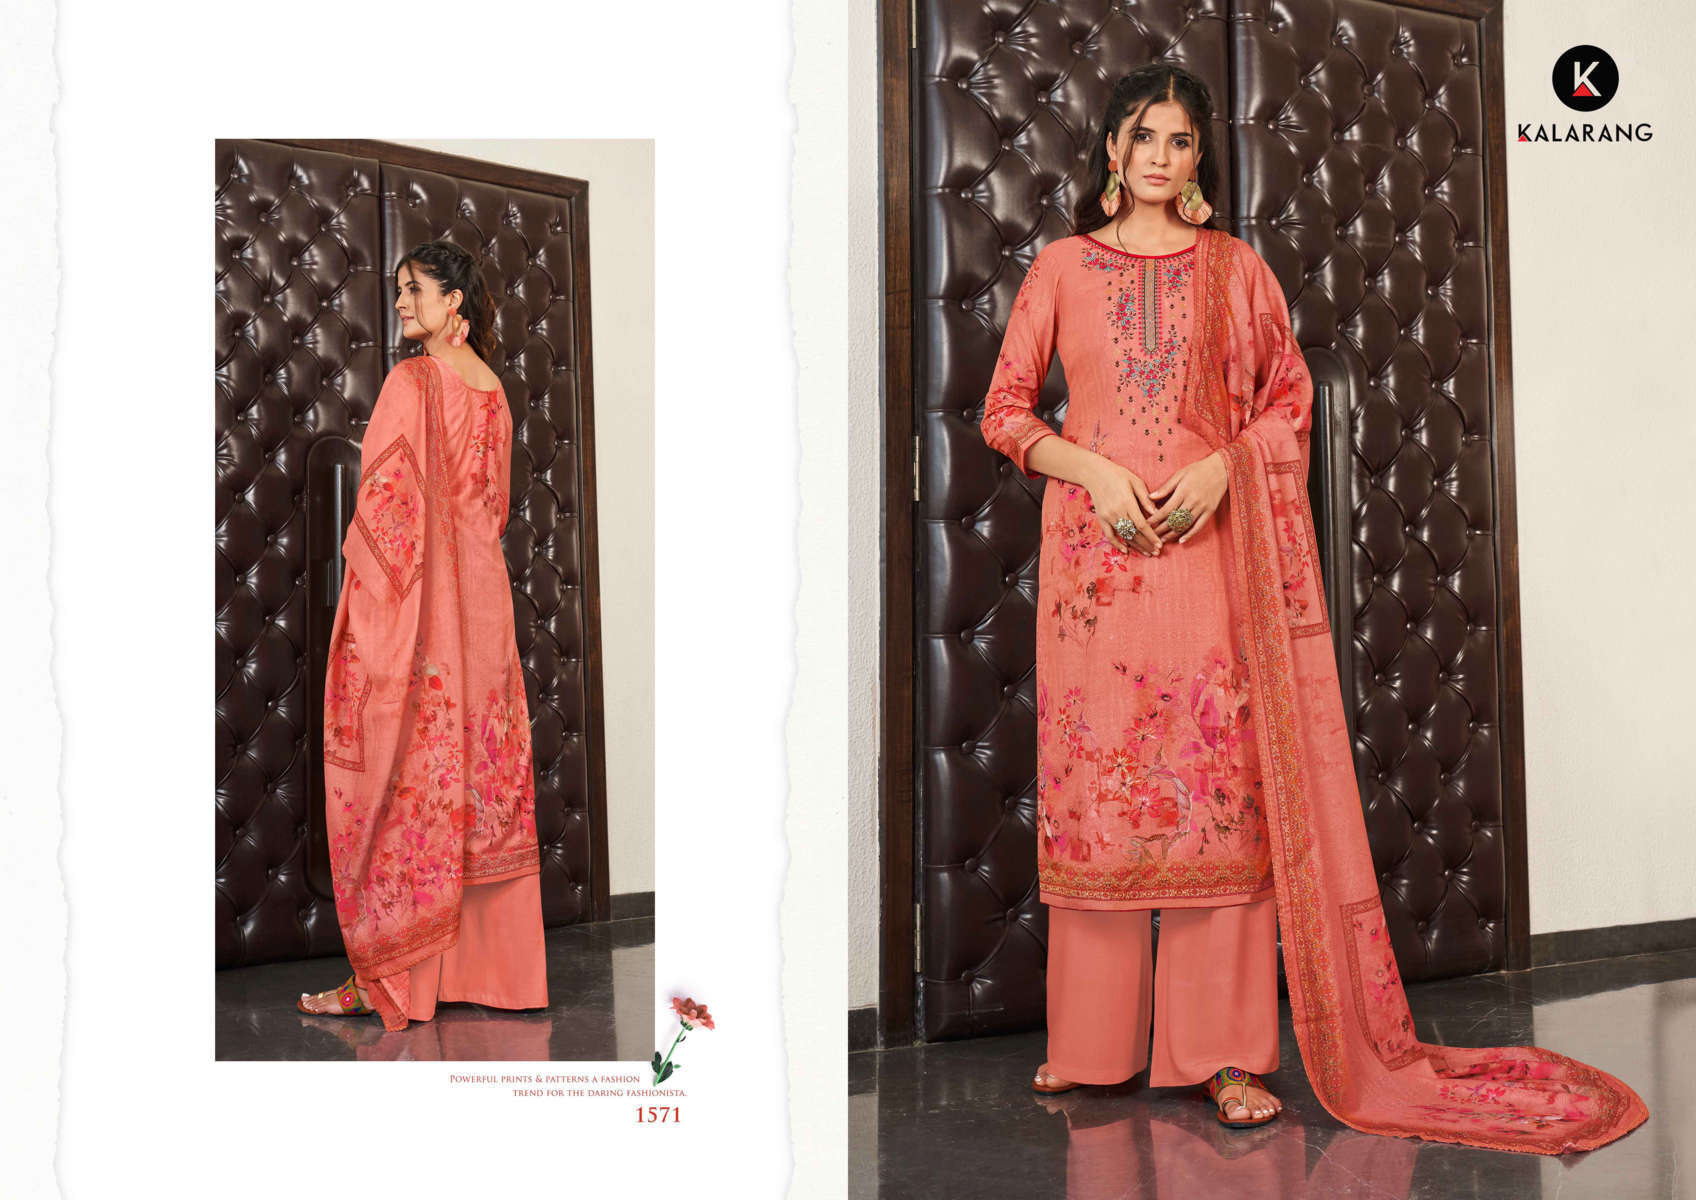 Kalarang Charming Vol 3 by Kessi Salwar Suit Wholesale Catalog 4 Pcs 2 - Kalarang Charming Vol 3 by Kessi Salwar Suit Wholesale Catalog 4 Pcs